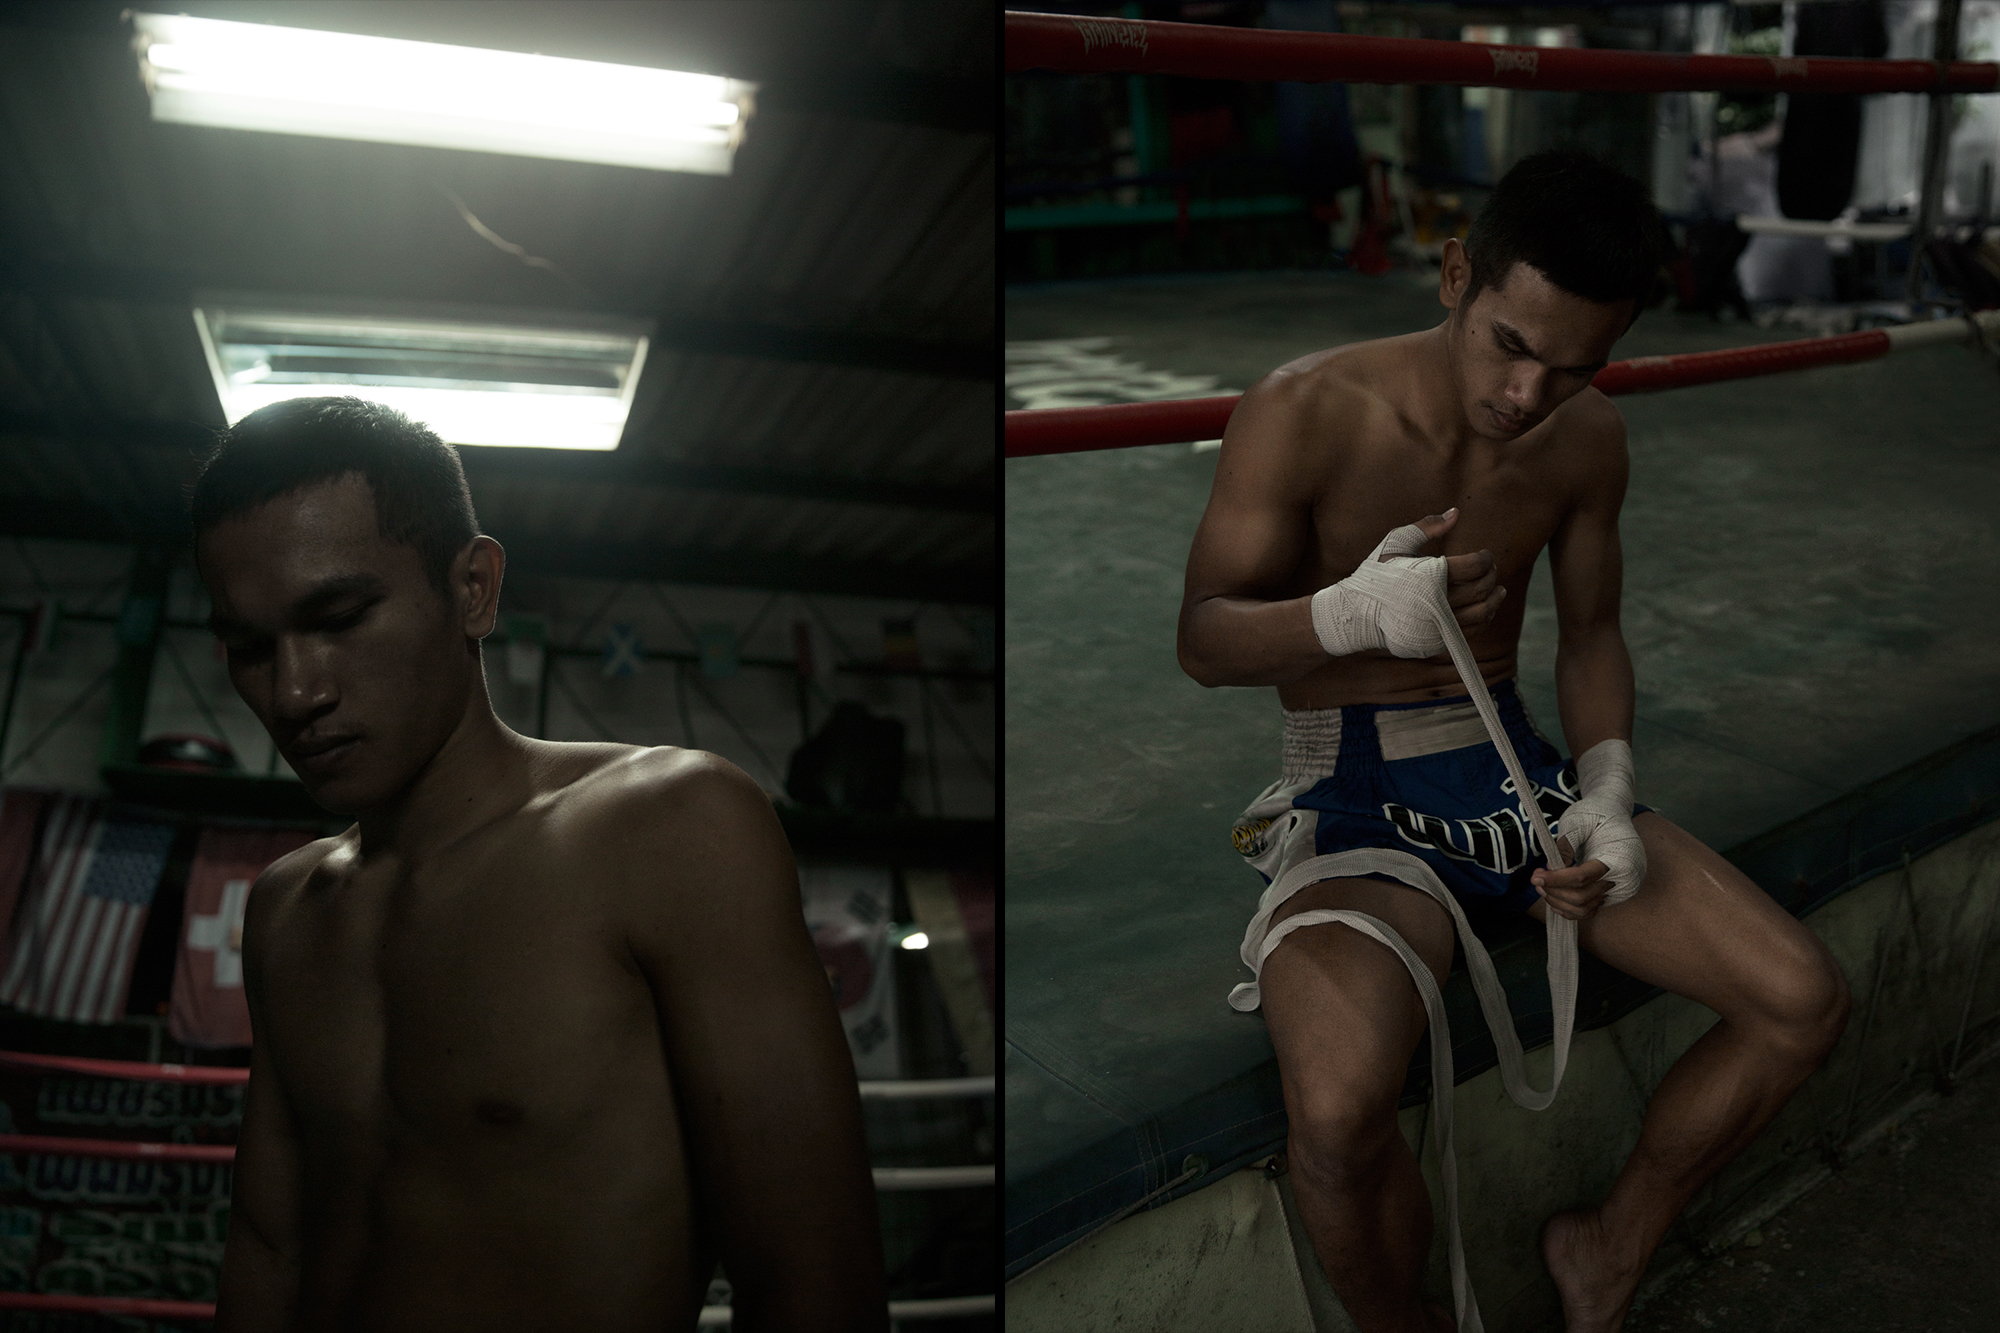 A young thai fighter photographed in Bangkok, Thailand by Maximilian Baier.